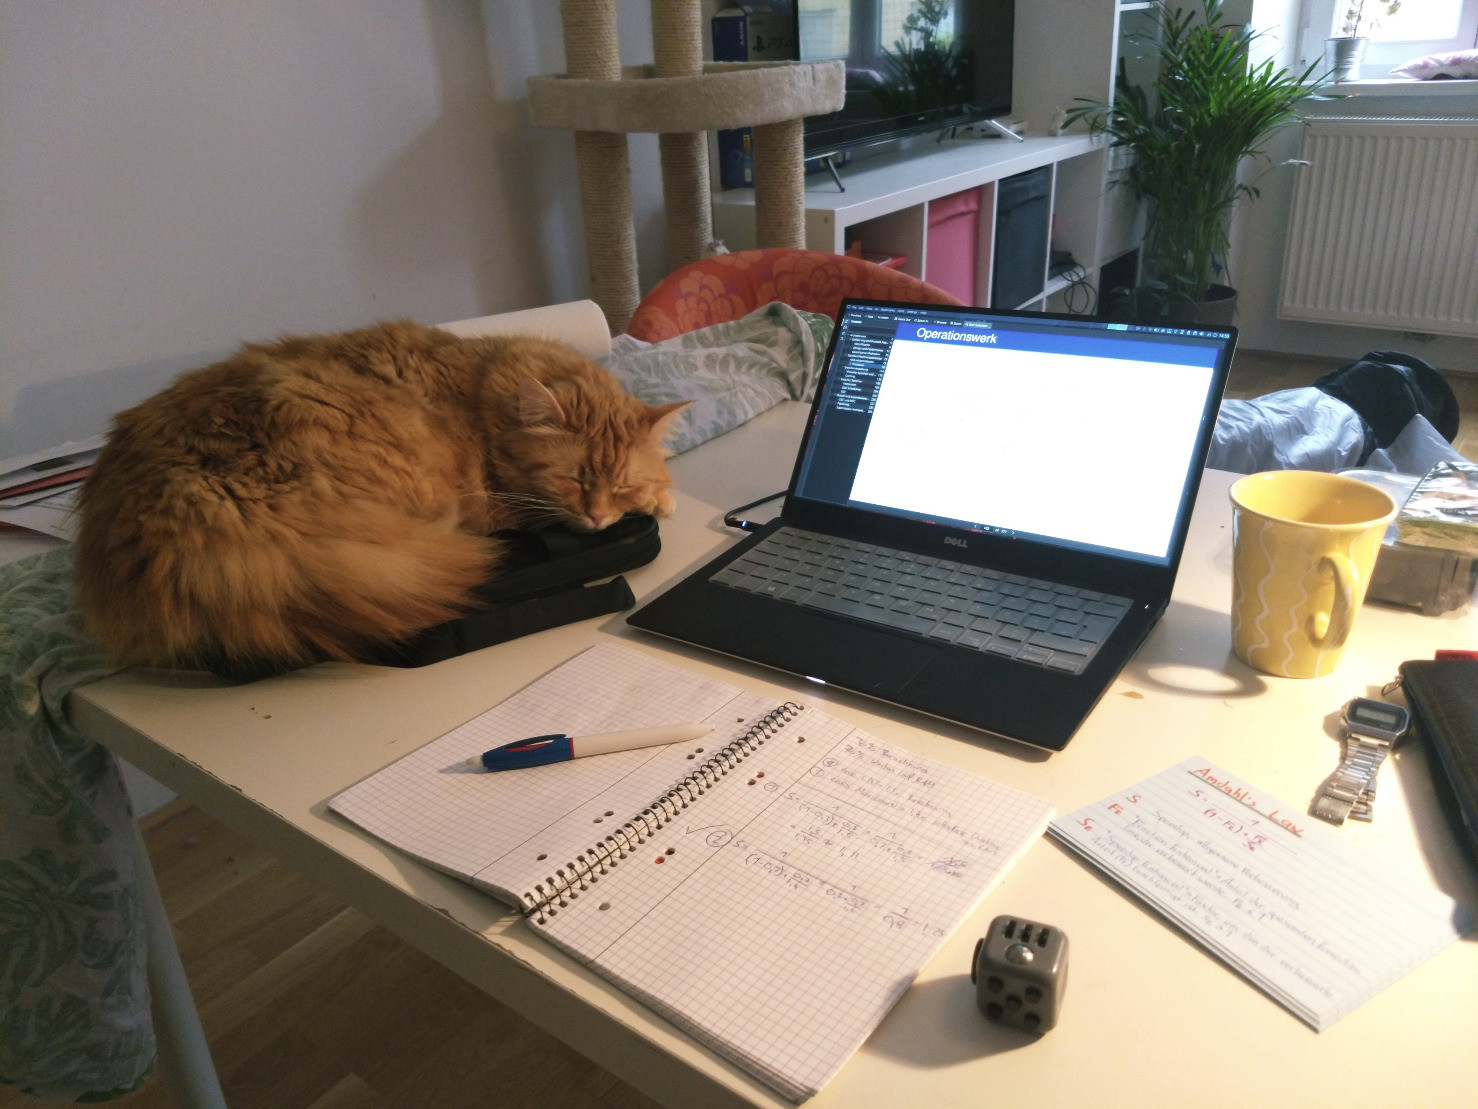 A giant red cat barely fitting on the laptop cover it sleeps on, next to a laptop, a notebook and other stuff I need to study, like some pens, a fidget cube and a cup of tea.